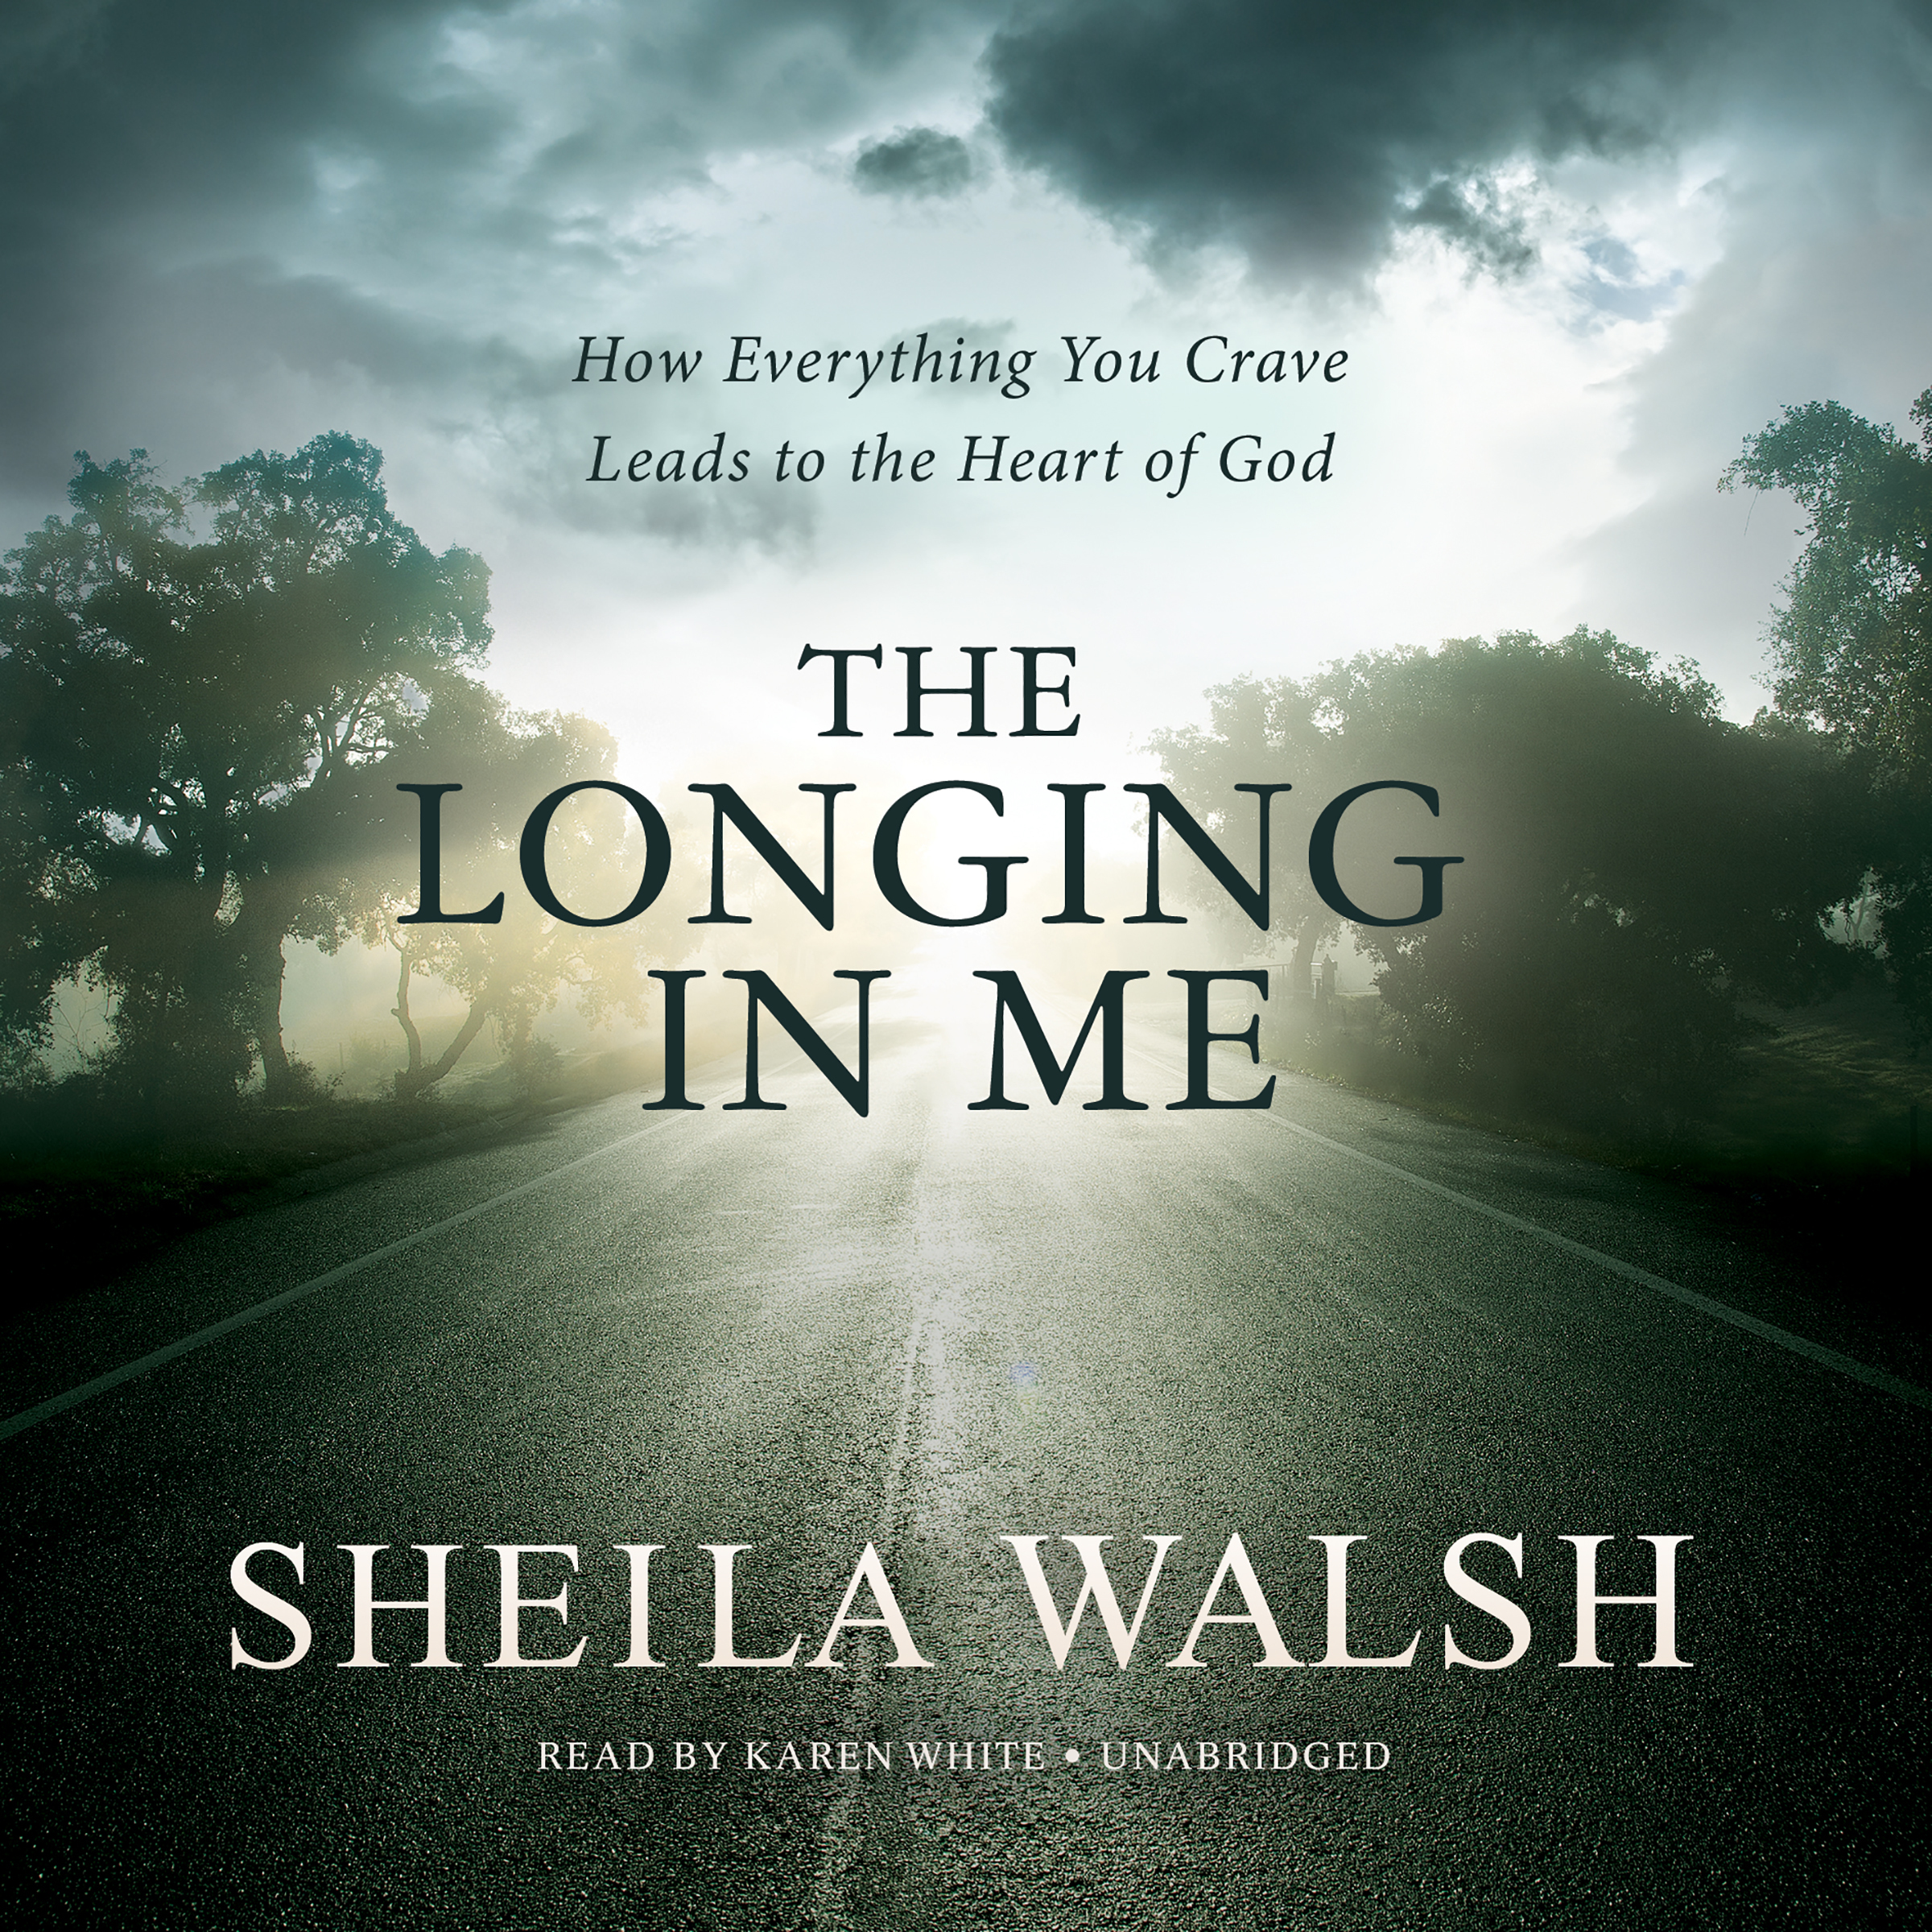 The Longing In Me Audiobook Listen Instantly